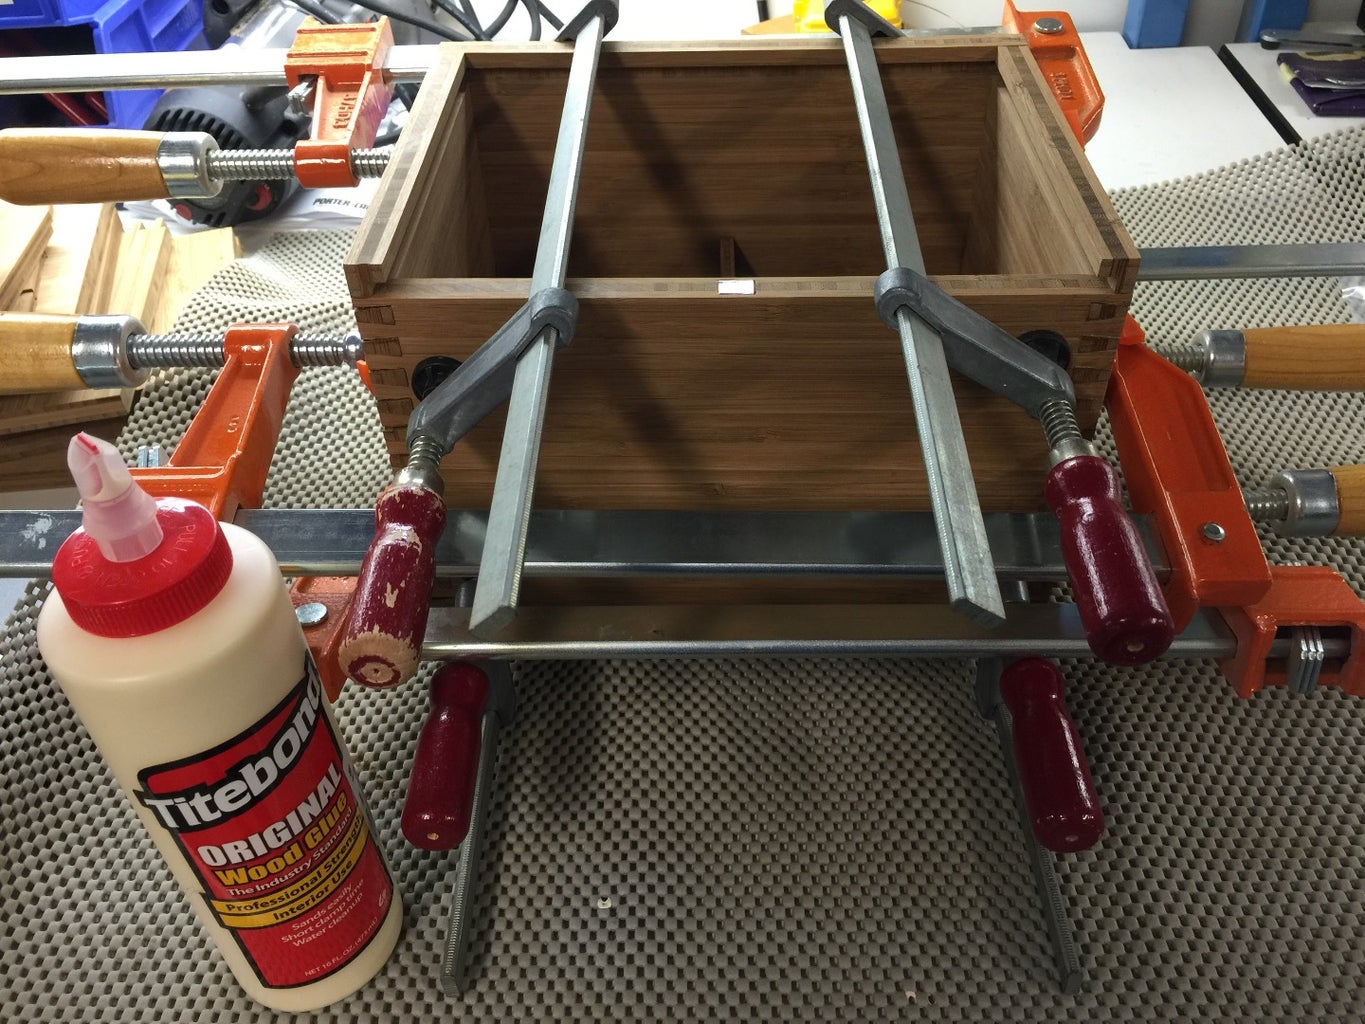 Assembly, Sanding, Filling and Finishing